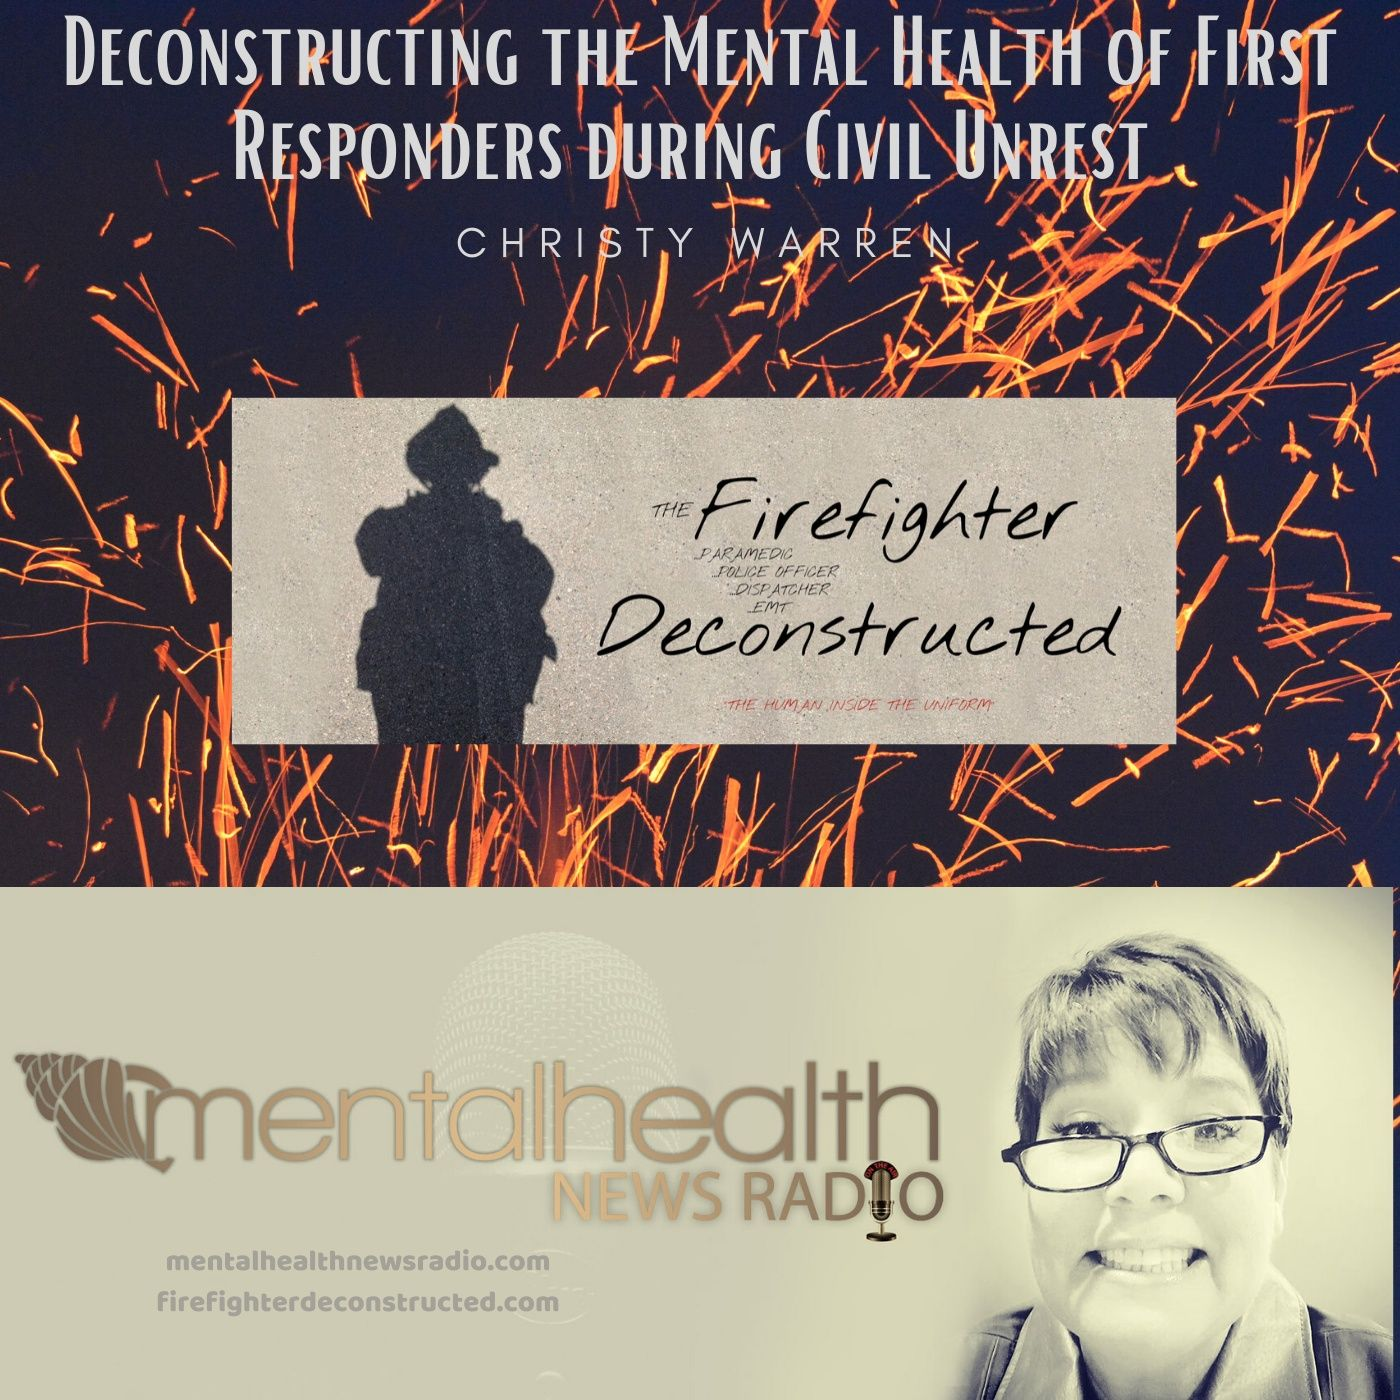 Mental Health News Radio - Deconstructing the Mental Health of First Responders During Civil Unrest